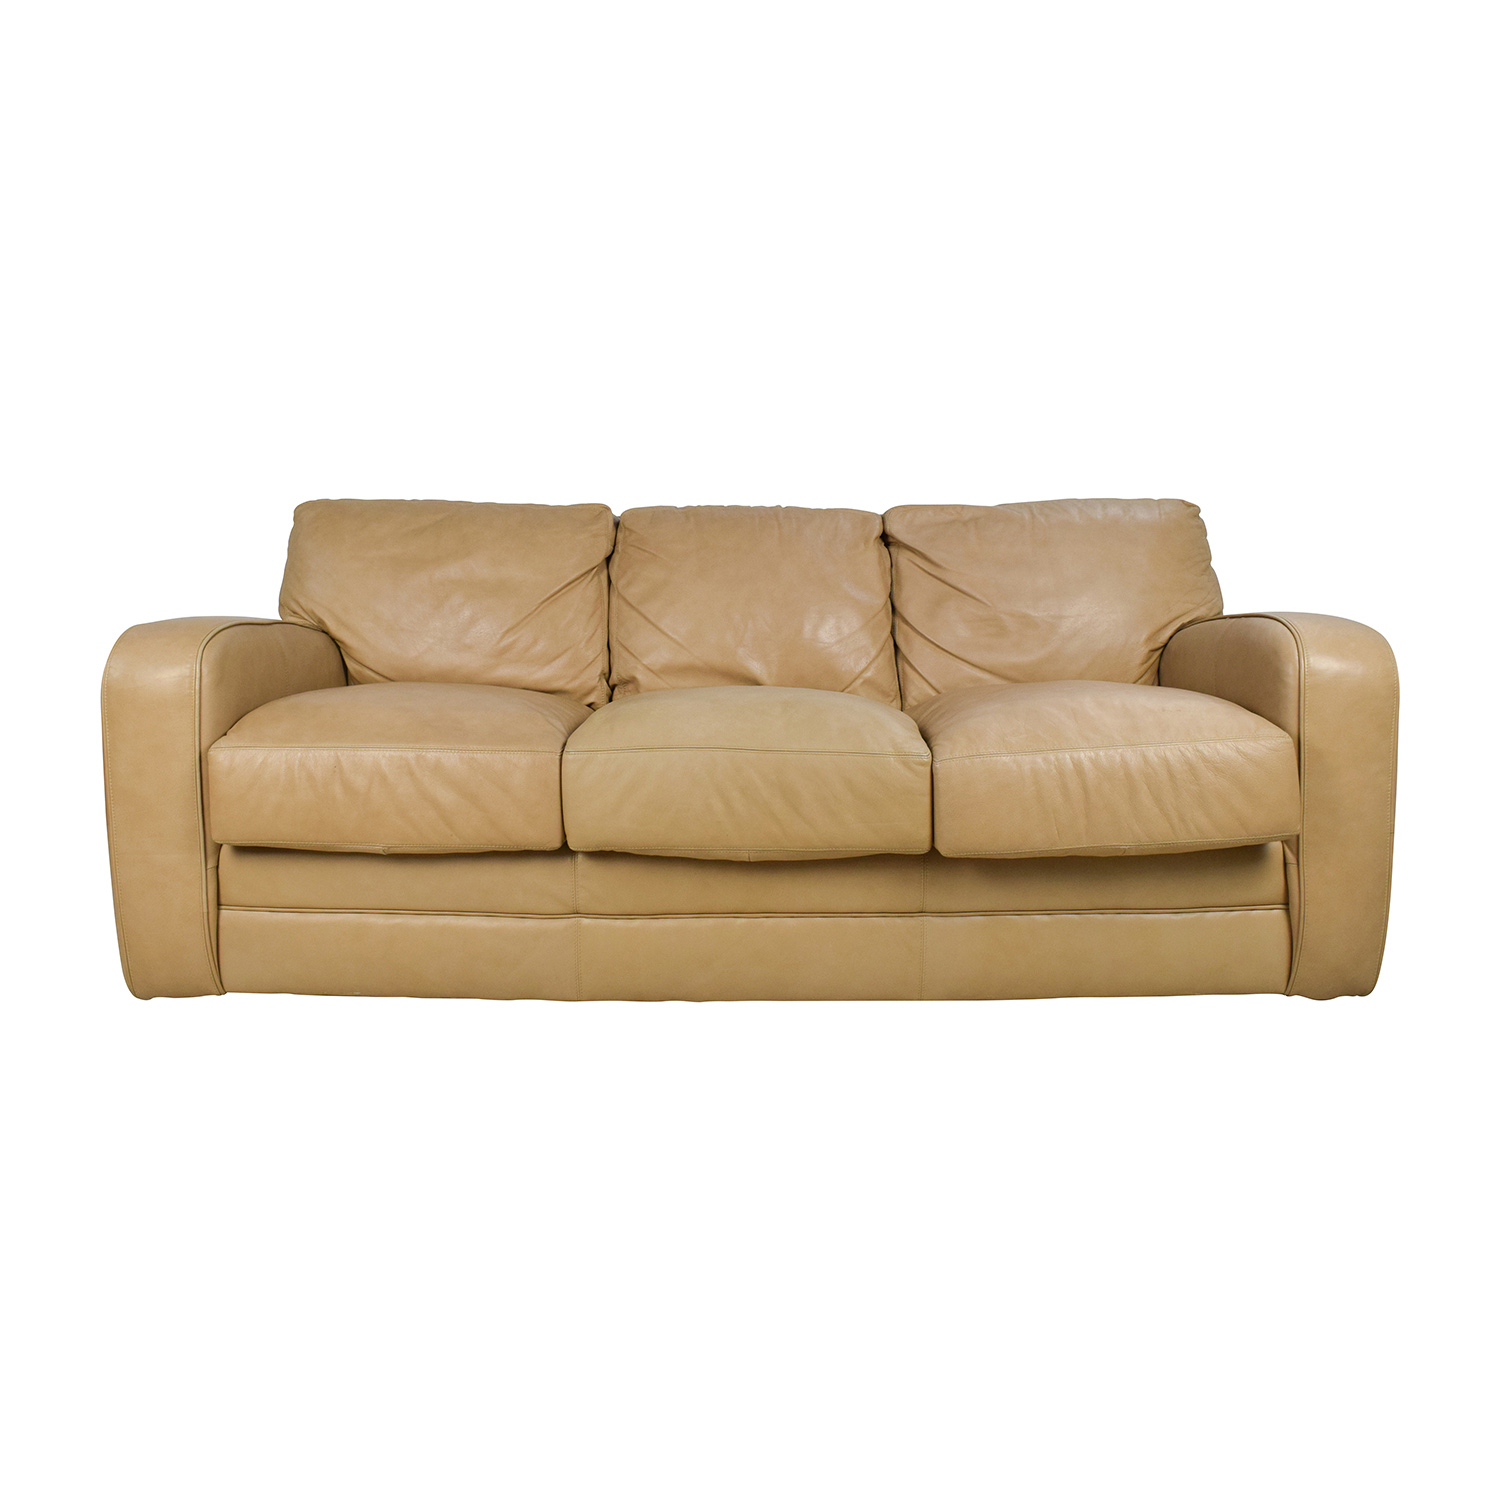 Beige Ledercouch 78% Off - Beige Three Seat Leather Sofa / Sofas